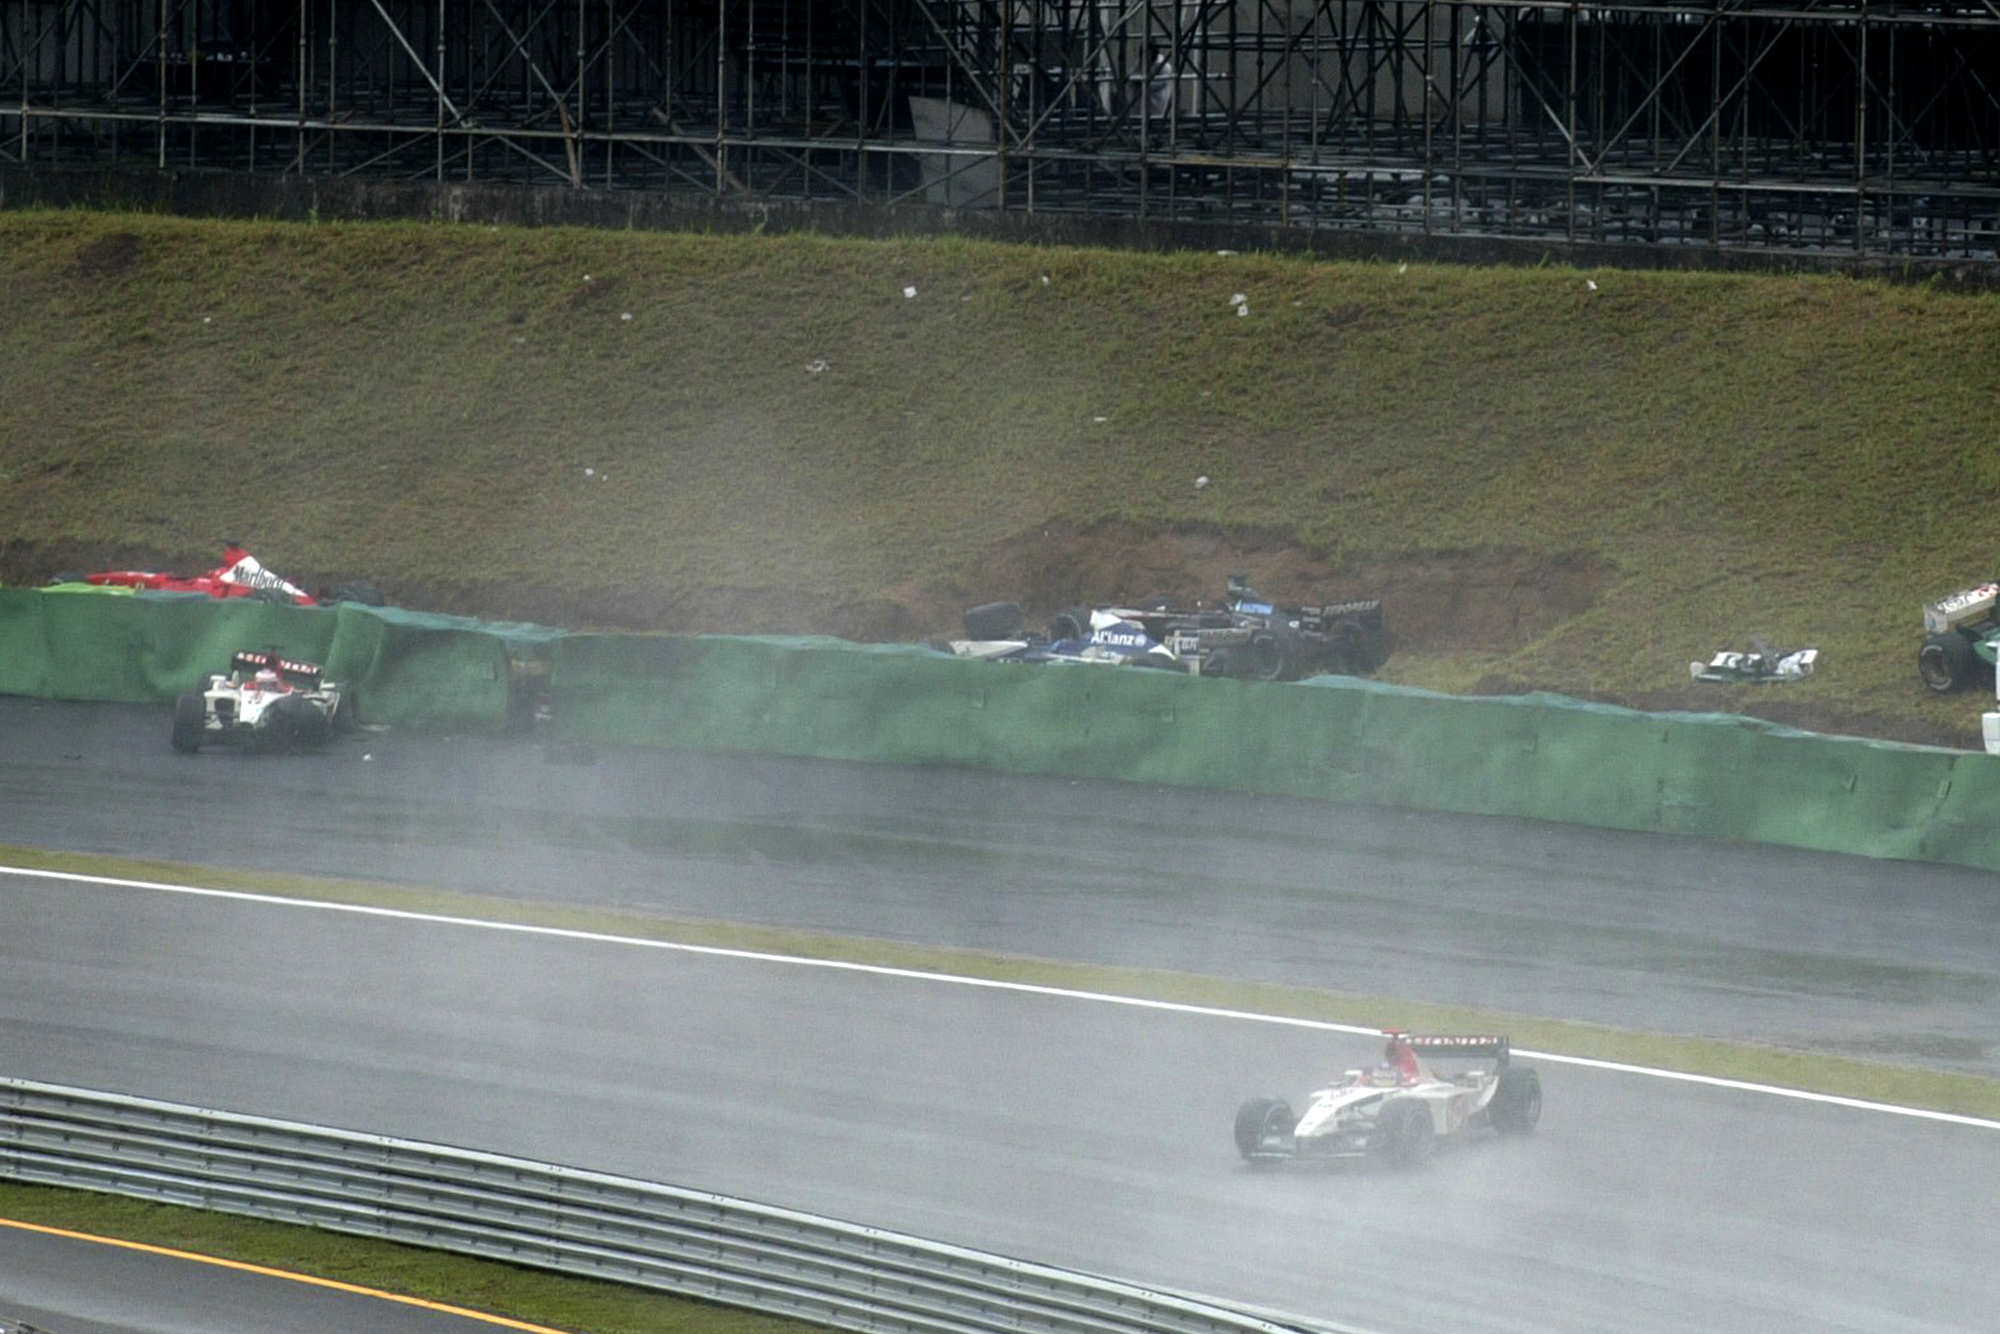 Rain, fire and the winds of change: the 2003 Brazilian GP may be F1's craziest race